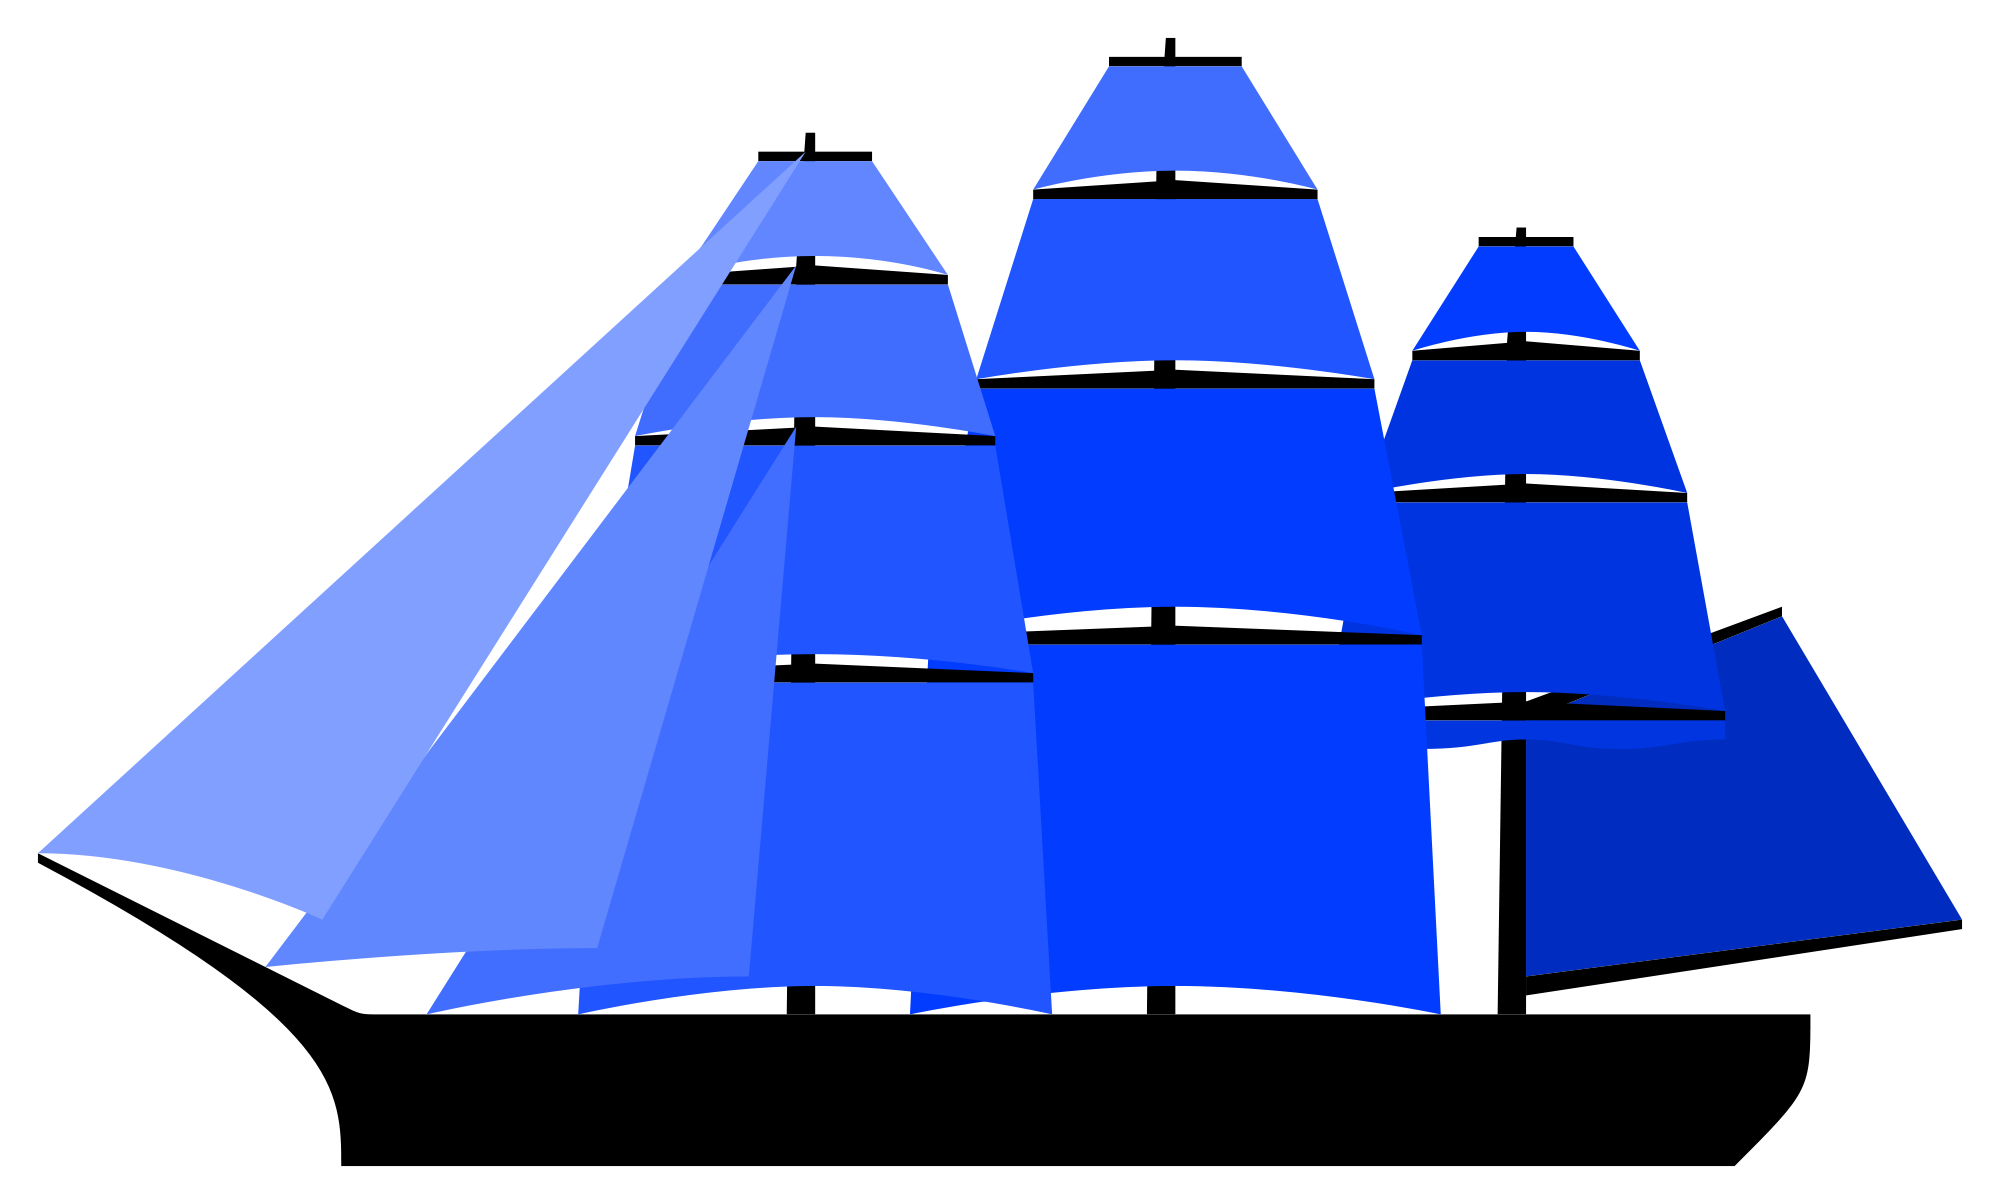 Ship svg sail boat. File plan wikimedia commons